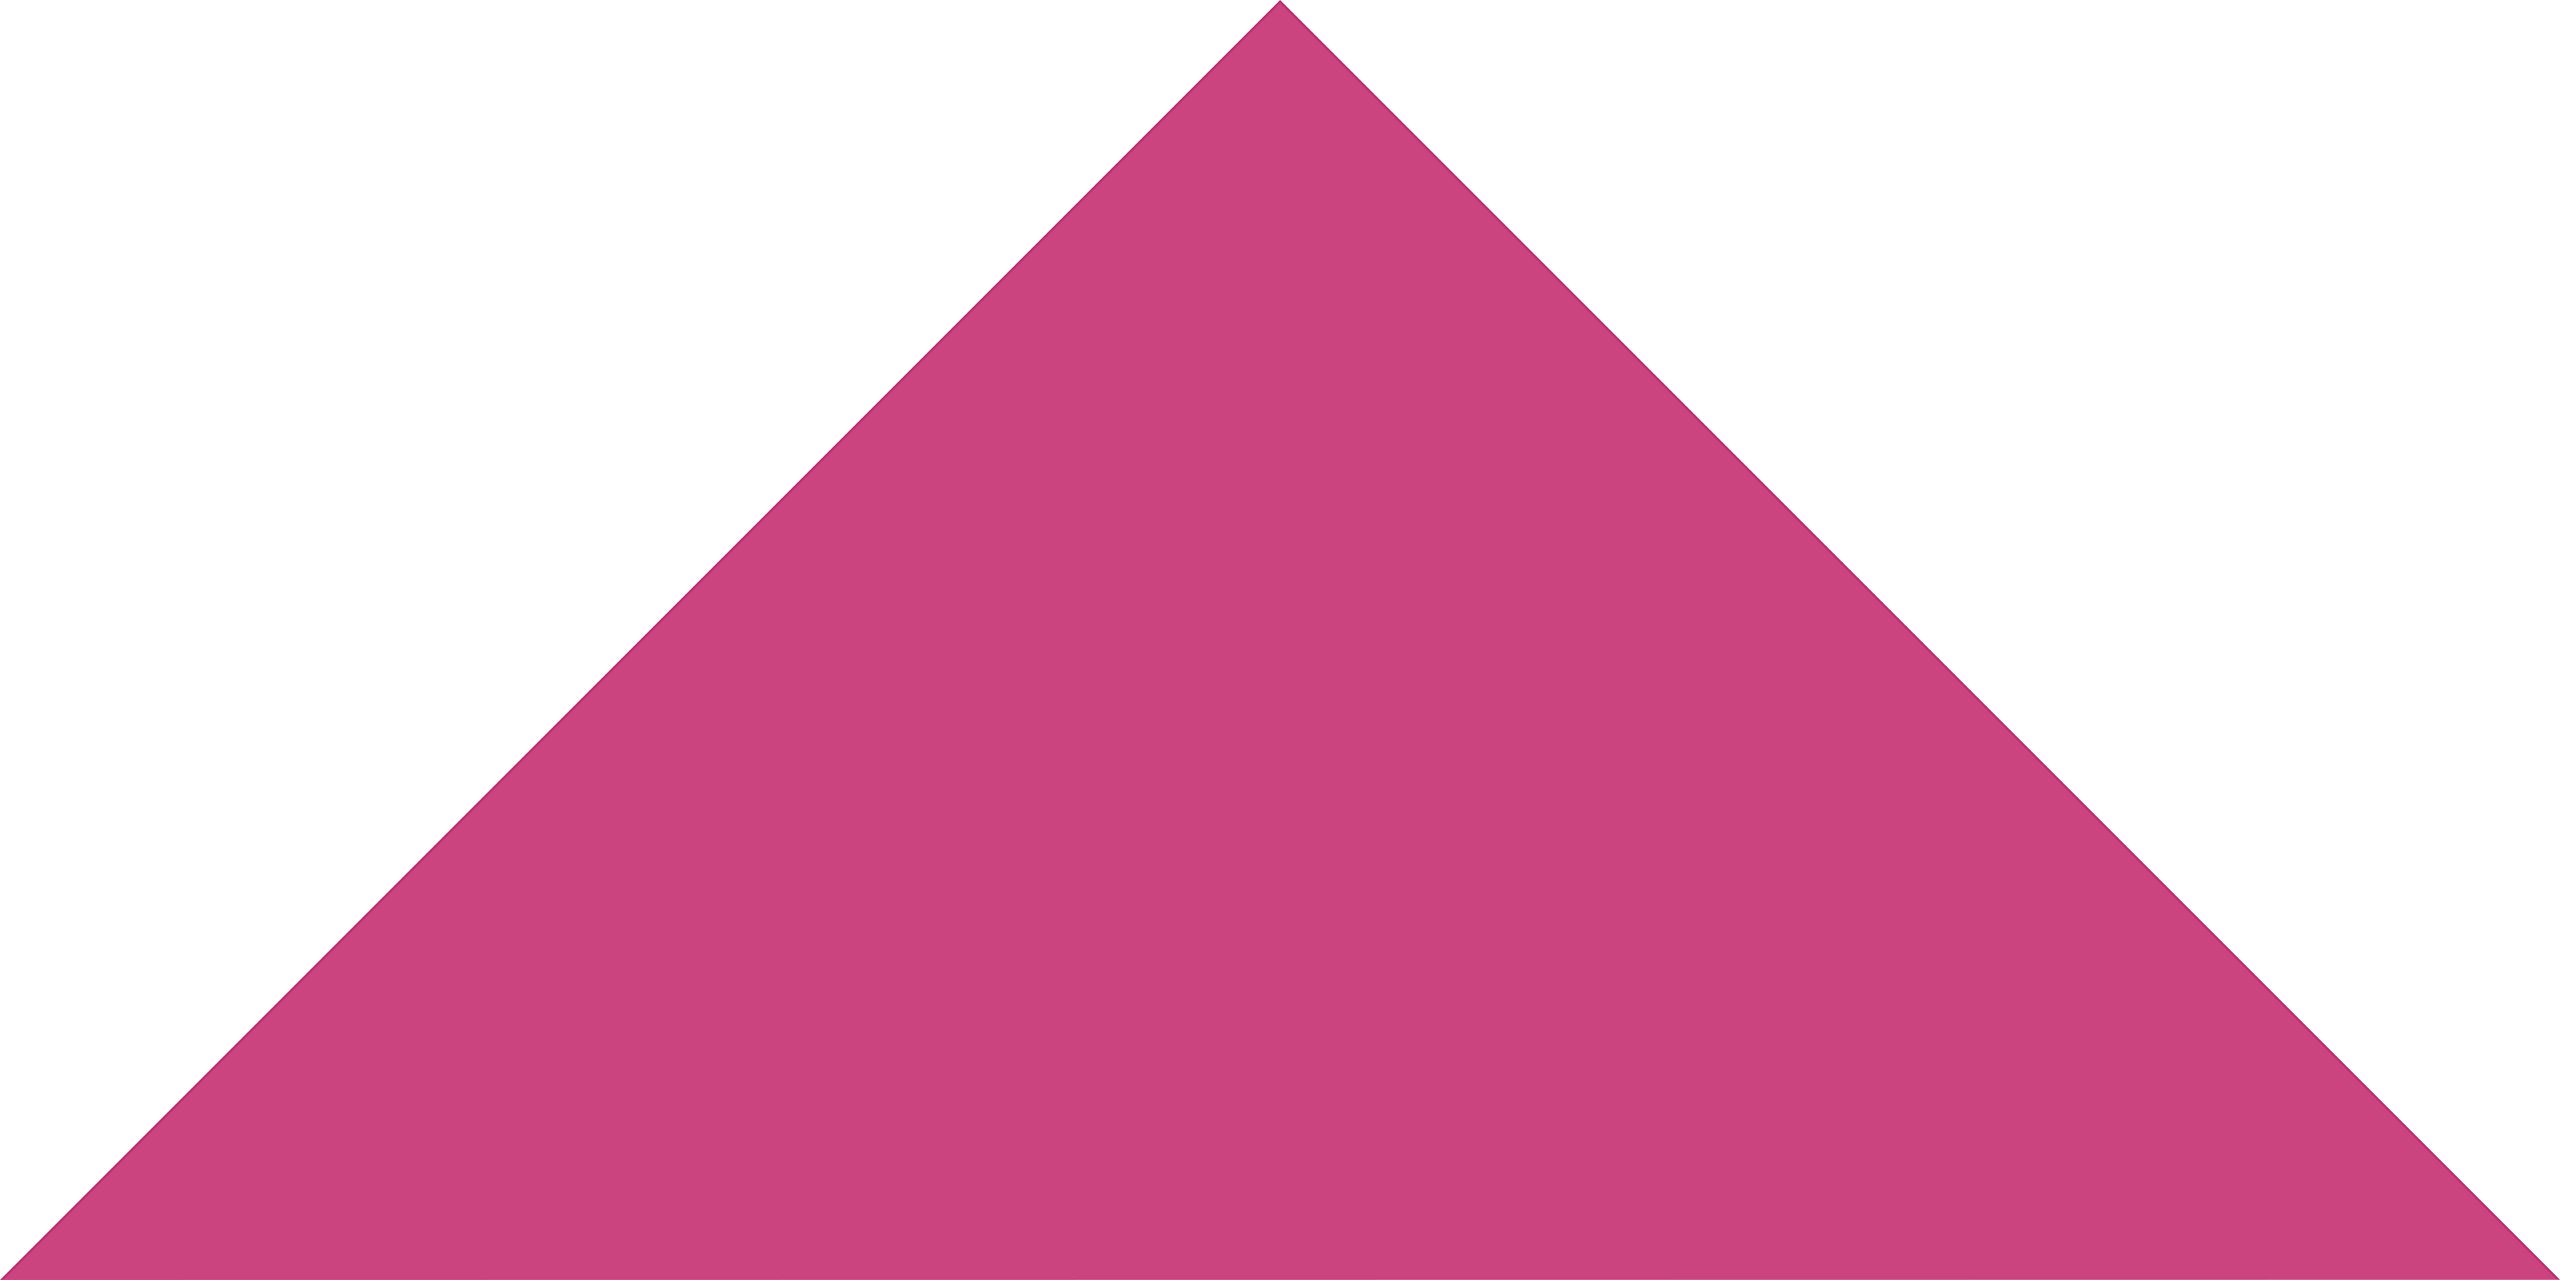 Hot Pink Small Triangle Wall Pattern - Set of 93 - Pattern Vinyl Wall Art Decal for Homes, Offices, Kids Rooms, Nurseries, Schools, High Schools, Colleges, Universities by Dana Decals (Image #1)